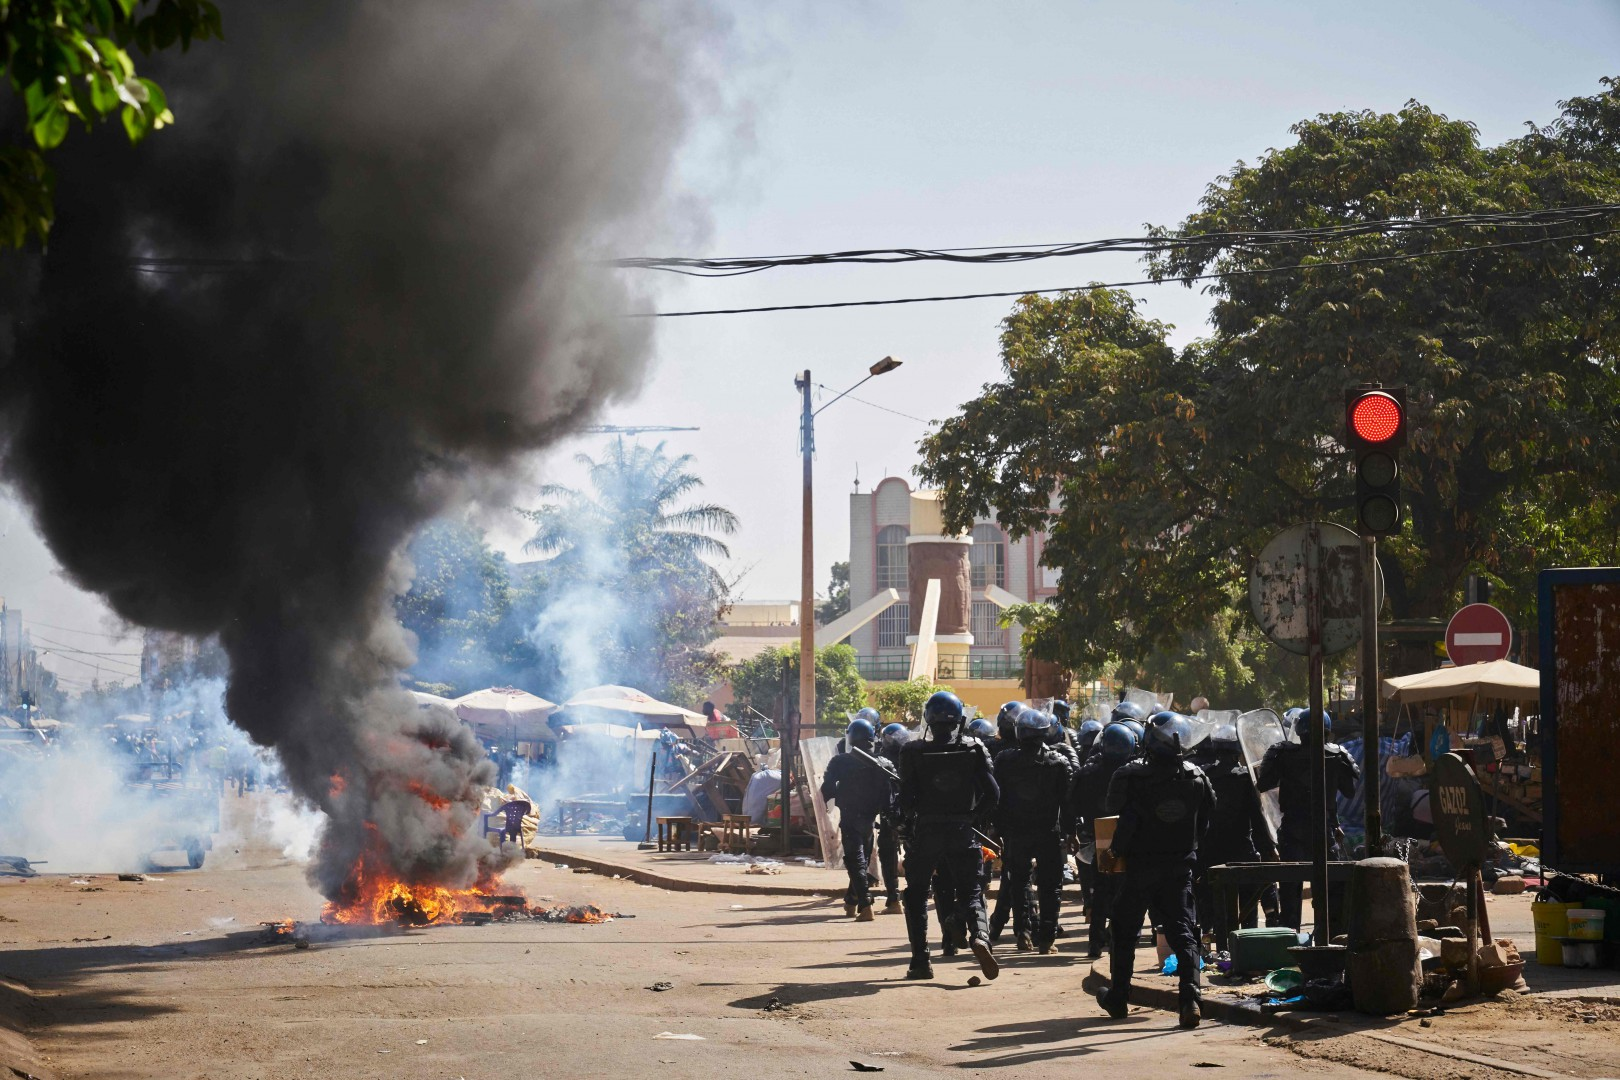 Malian riot police members run past a burning barricade during a protest called by opposition parties in Bamako on December 8, 2018. (Photo by MICHELE CATTANI / AFP)